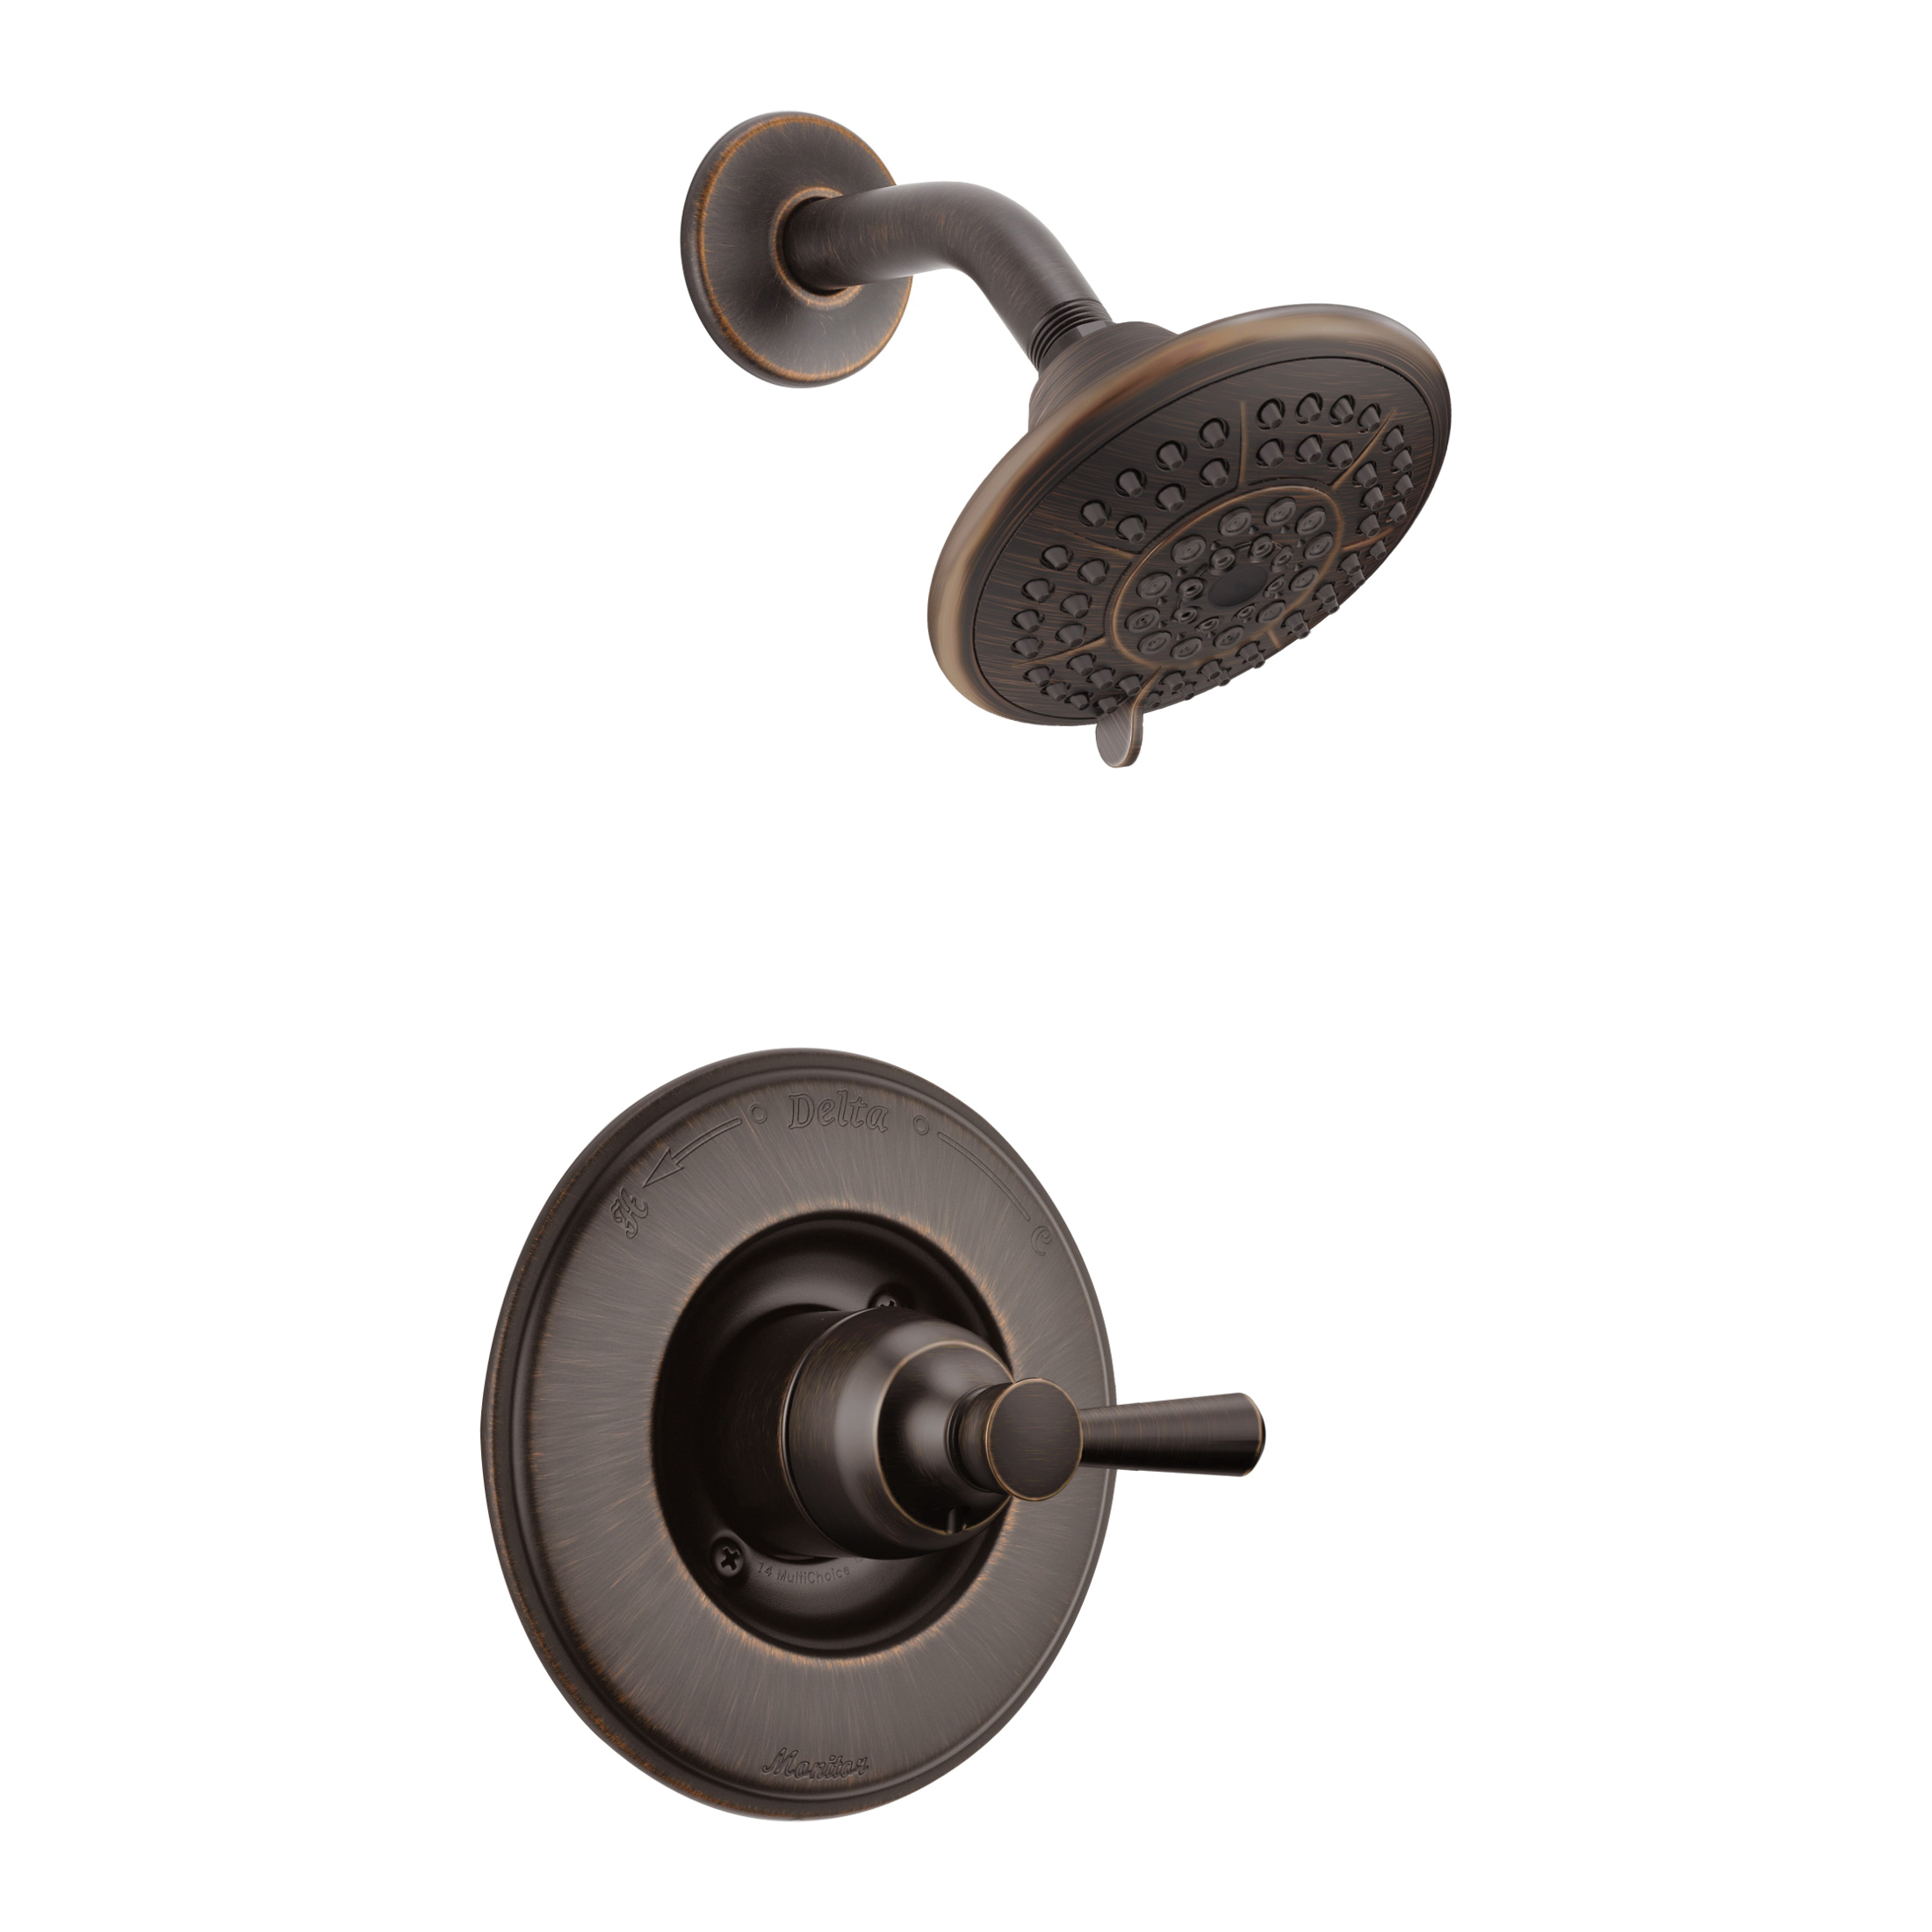 DELTA® T14293-RB Monitor® 14 Traditional Shower Trim, 1.75 gpm Shower, Hand Shower Yes/No: No, Venetian Bronze